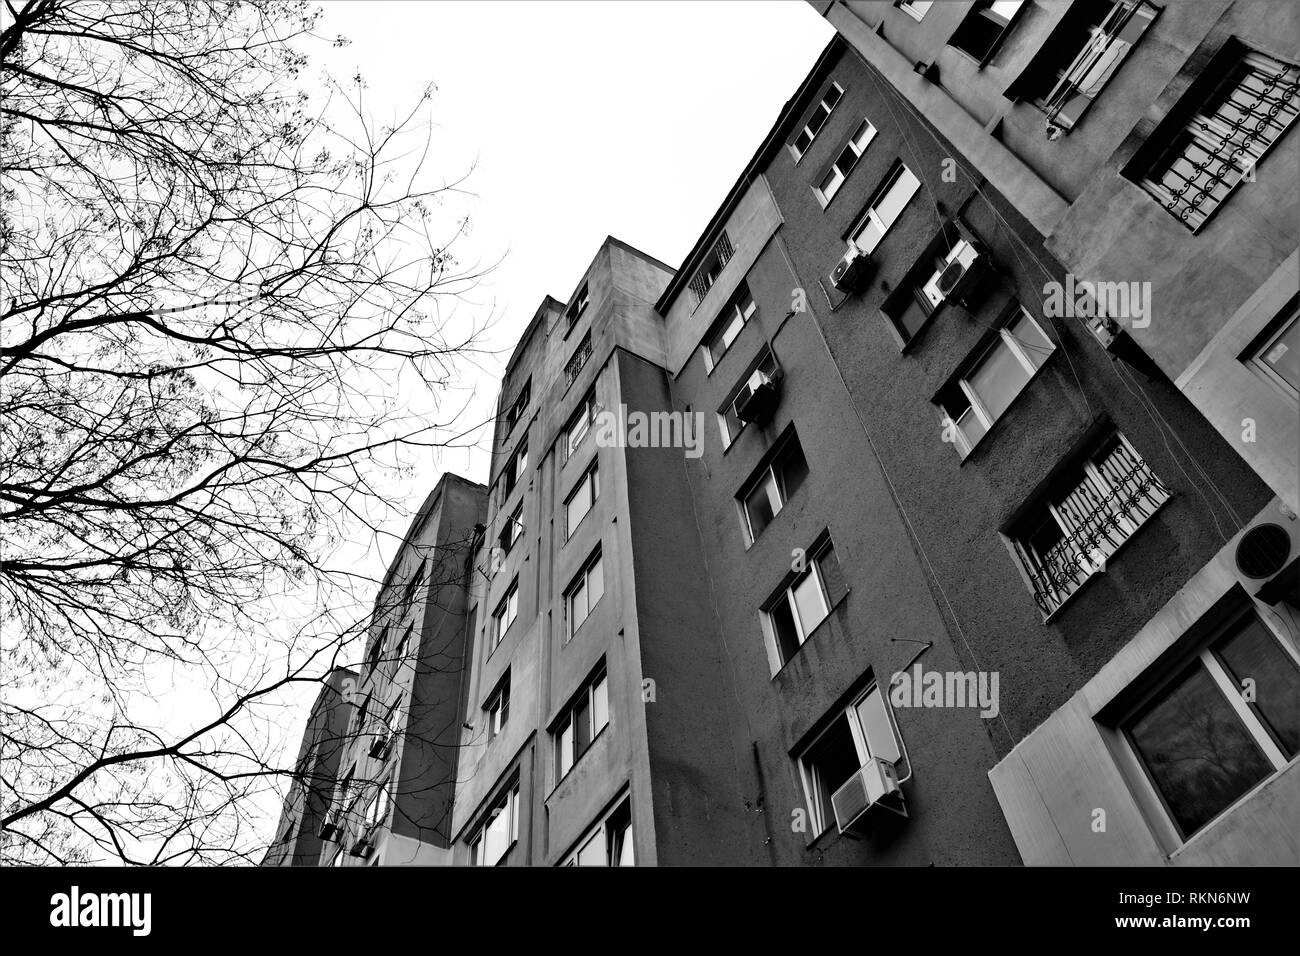 Public housing in a soviet periphery. - Stock Image